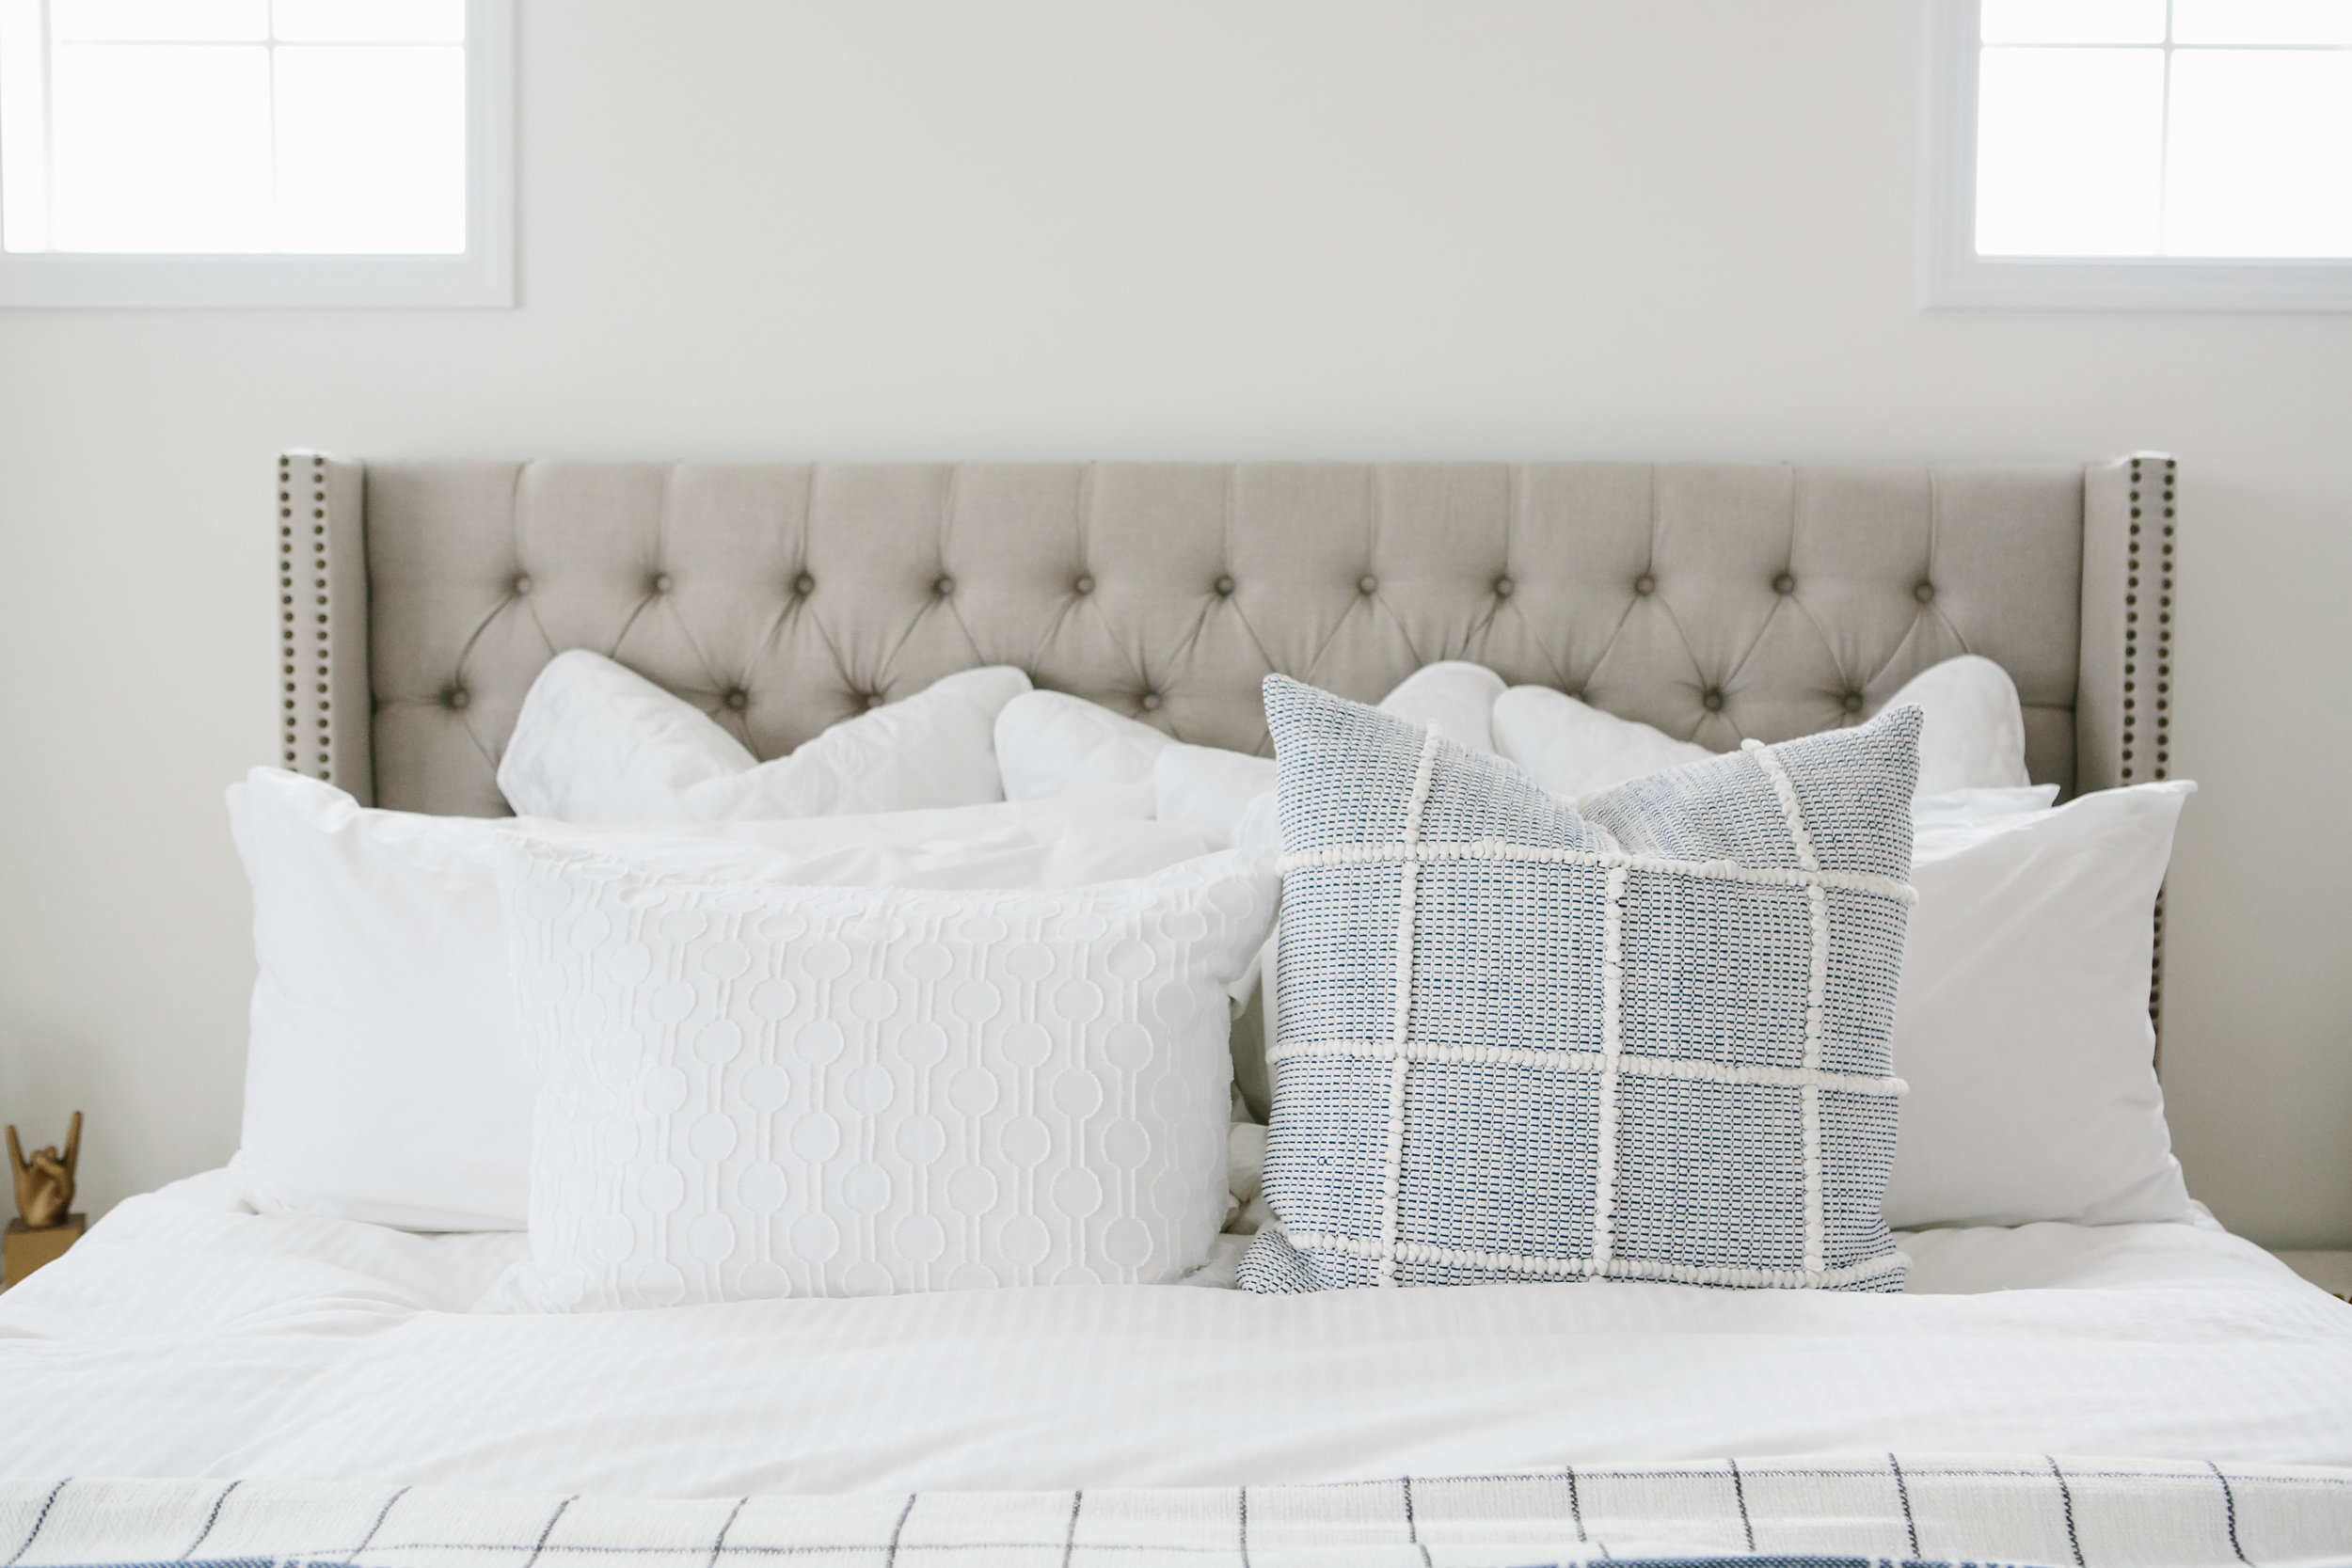 Master bed pillows in white and blue.